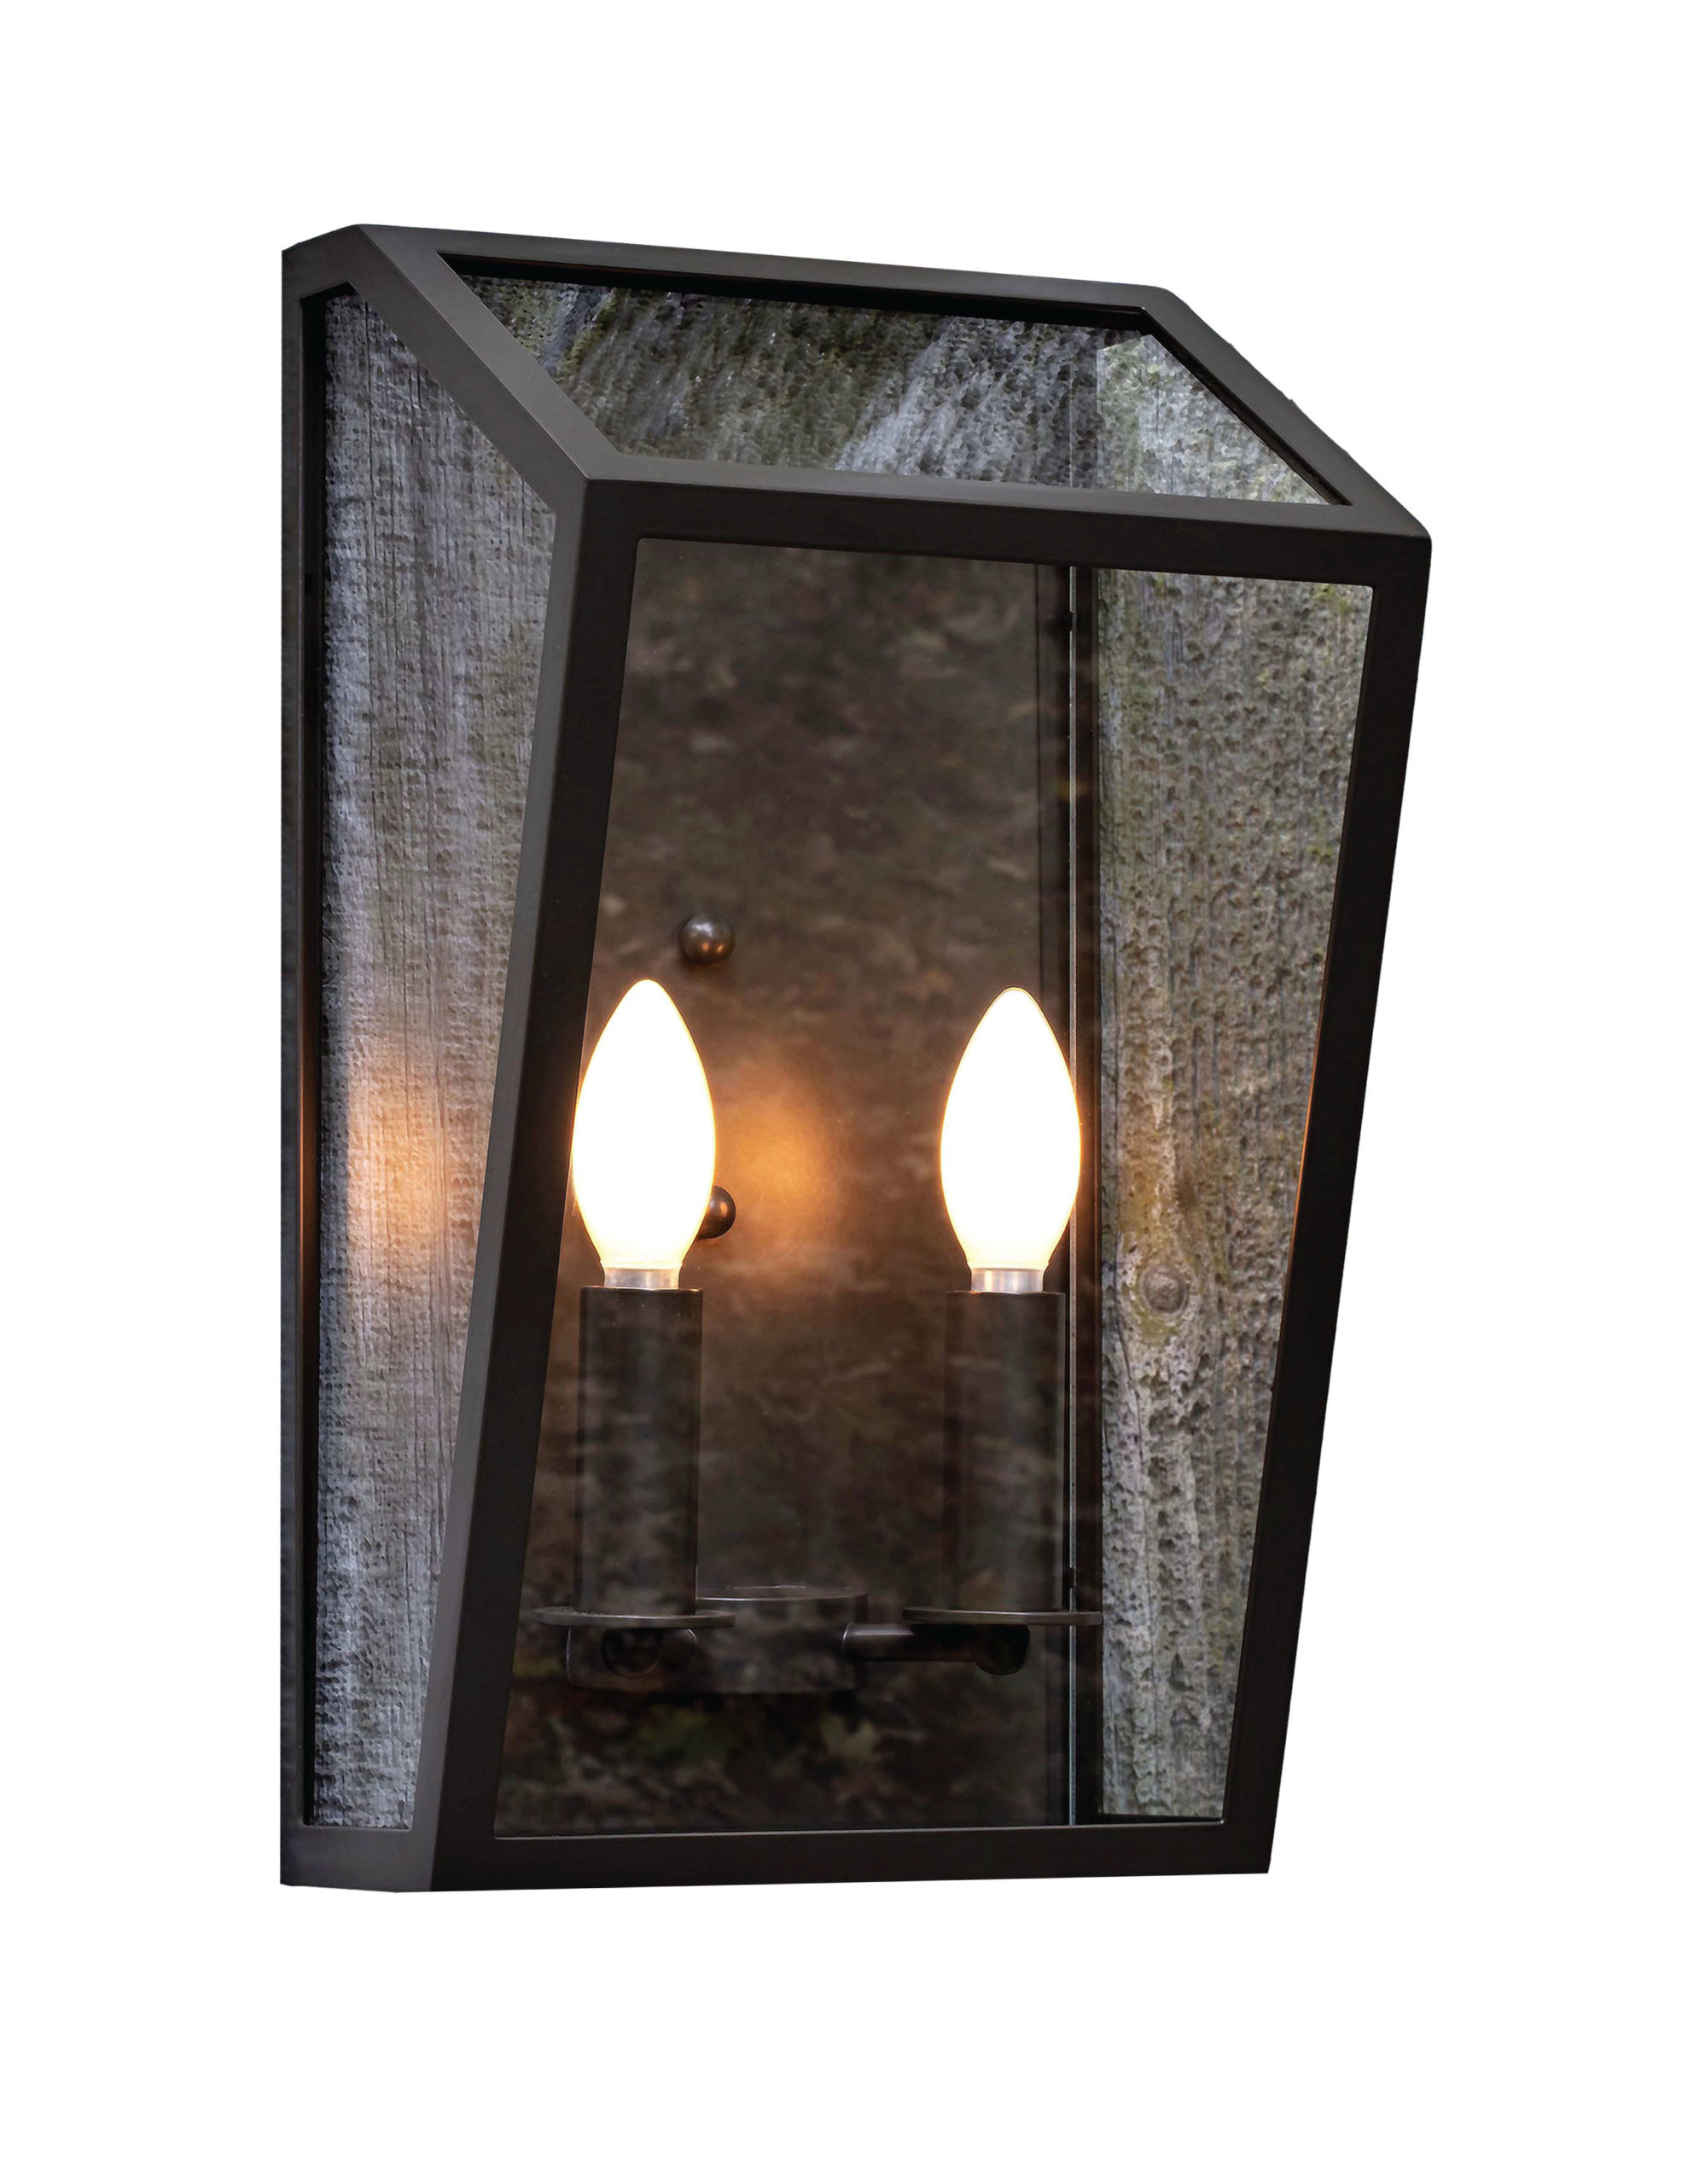 CL_Sterling_and_son_products_WNWN_dropbox_exterior_wall_sconce_front-scaled-1